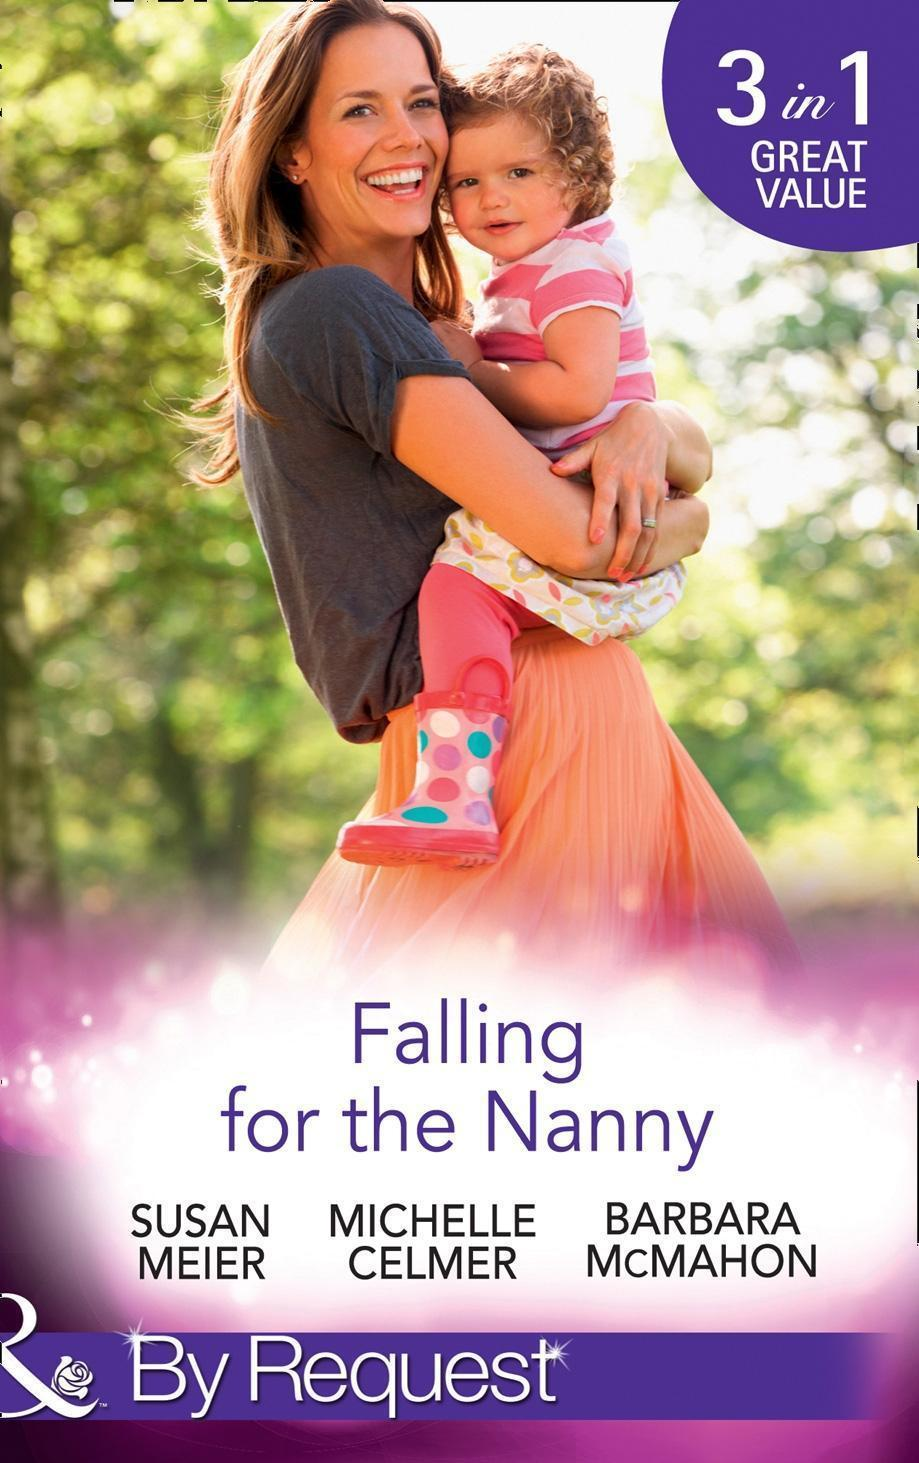 Falling For The Nanny: The Billionaire's Baby SOS / The Nanny Bombshell / The Nanny Who Kissed Her Boss (Mills & Boon By Request)